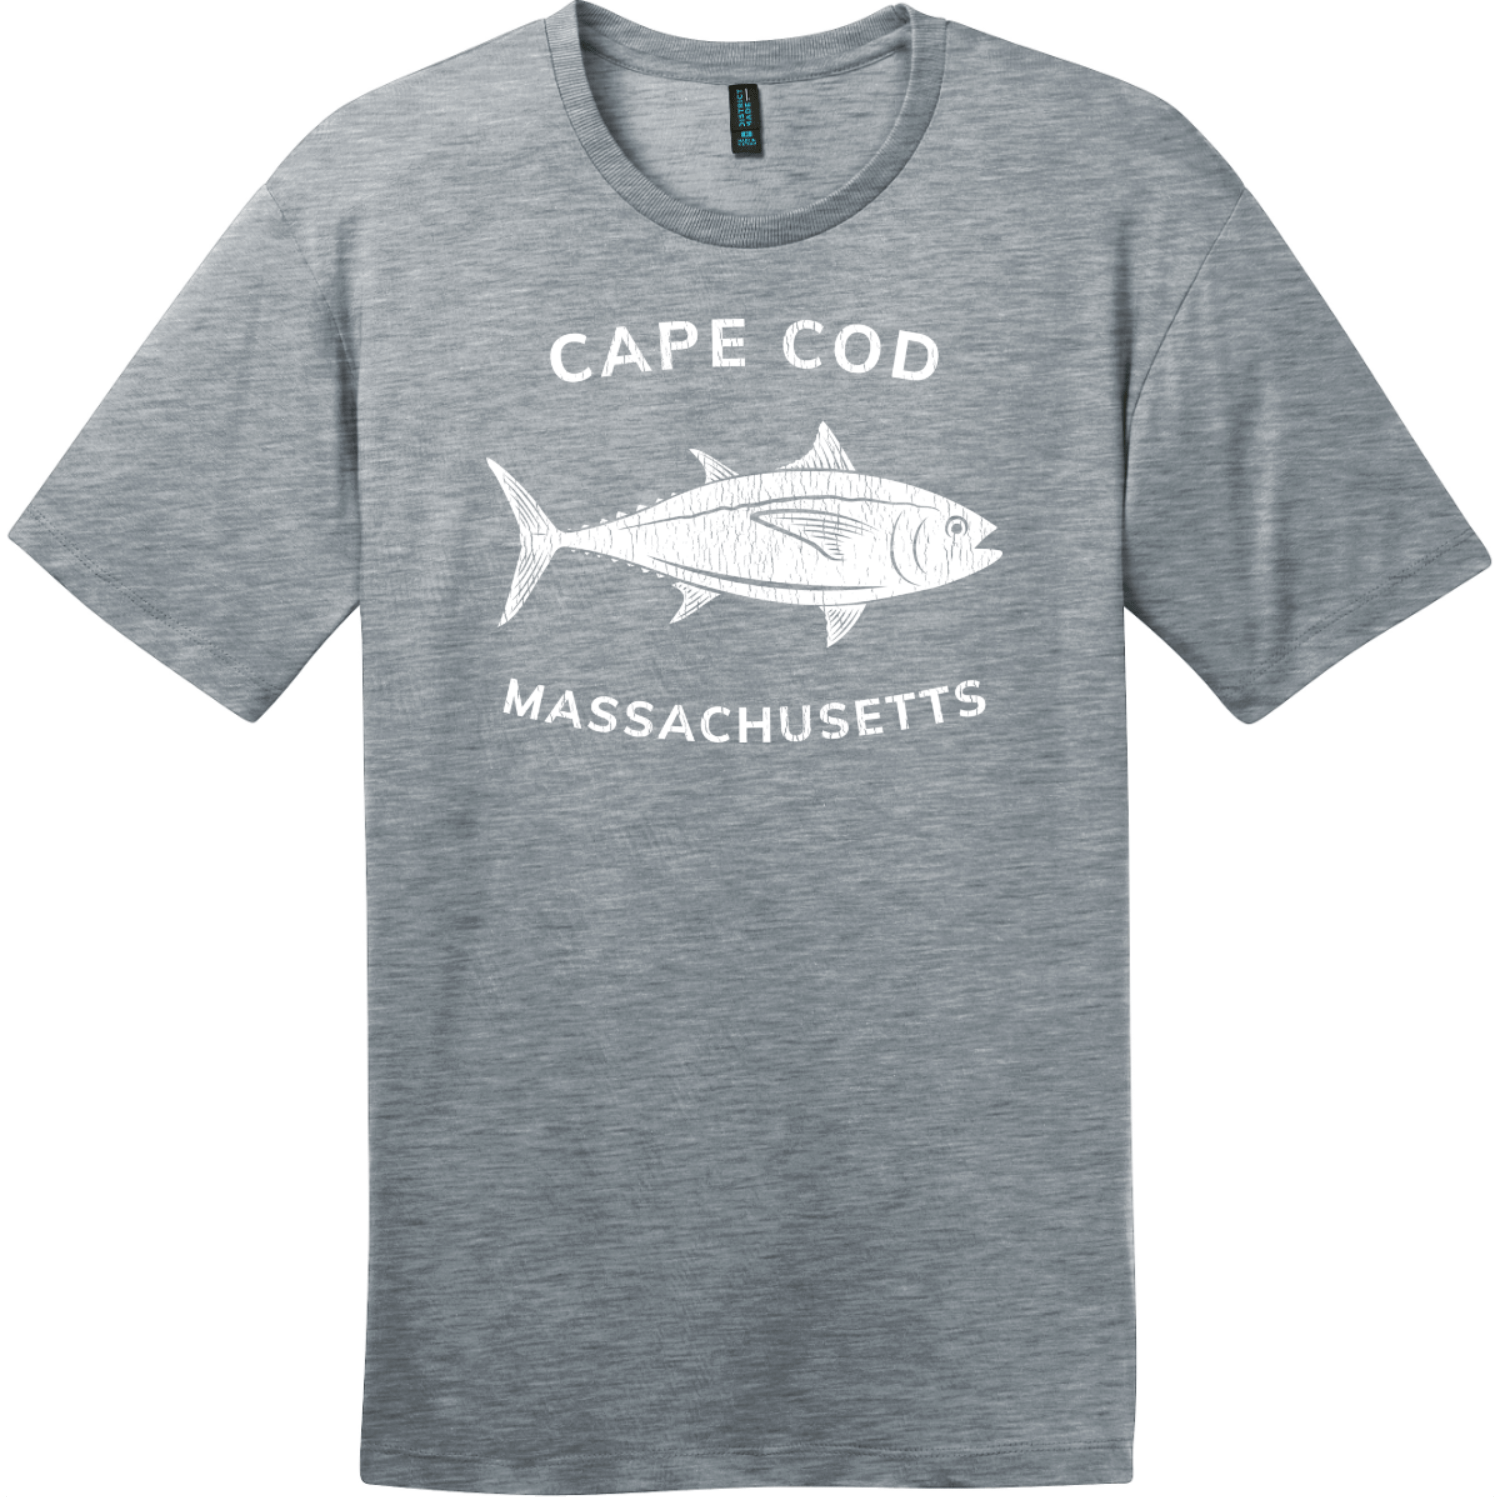 Cape Cod Massachusetts Tuna T-Shirt Heathered Steel District Perfect Weight Tee DT104